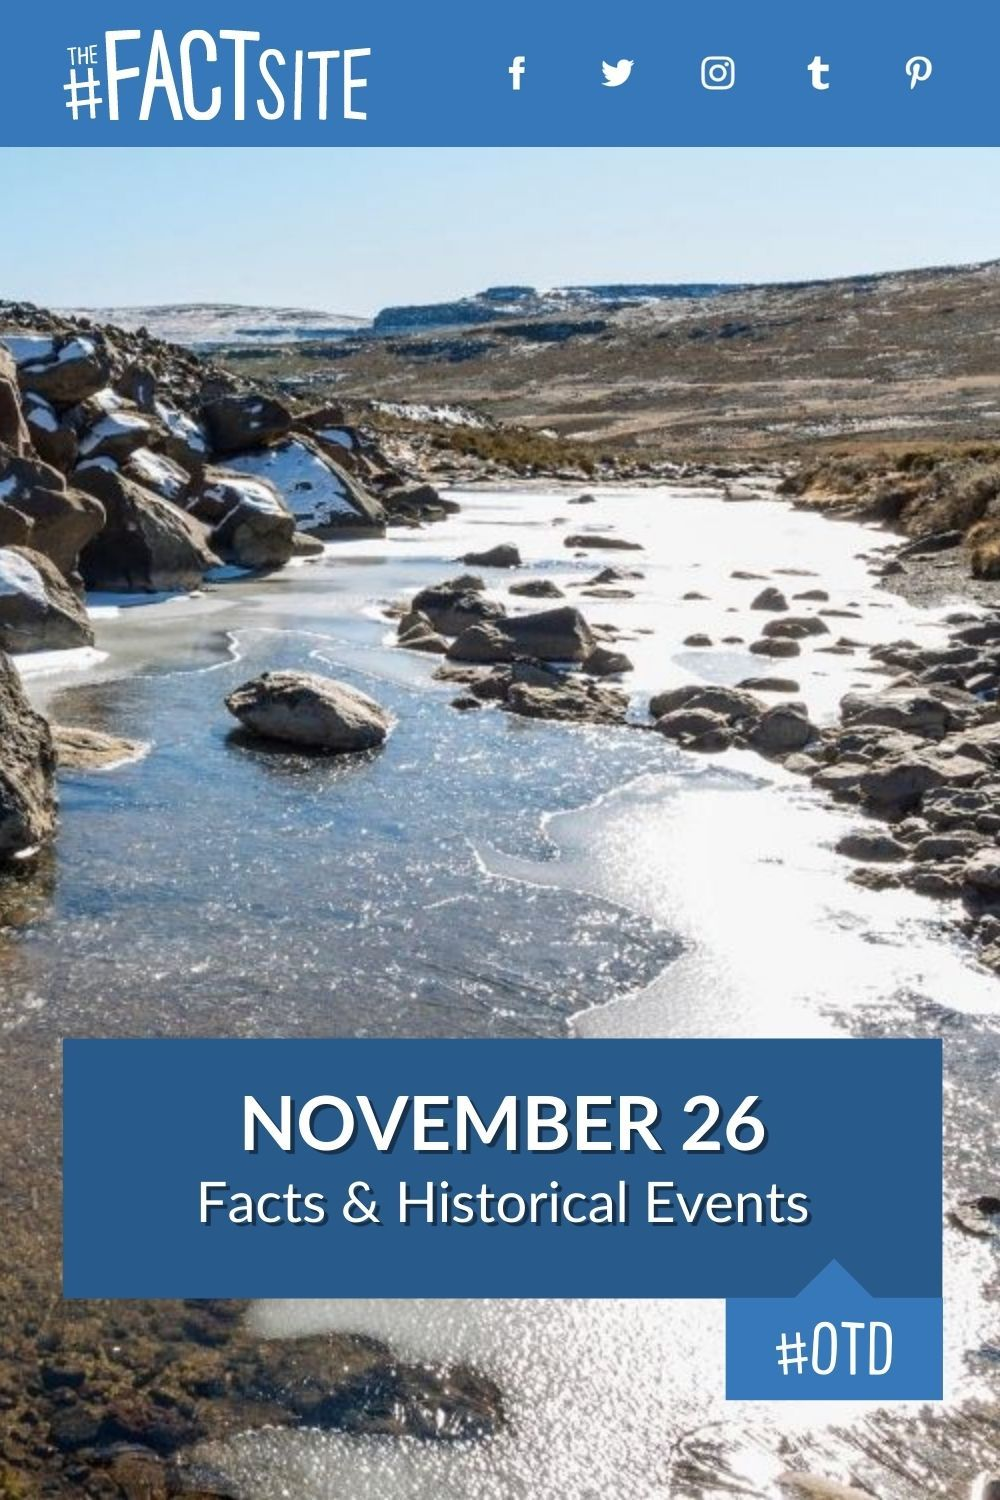 Facts & Historic Events That Happened on November 26